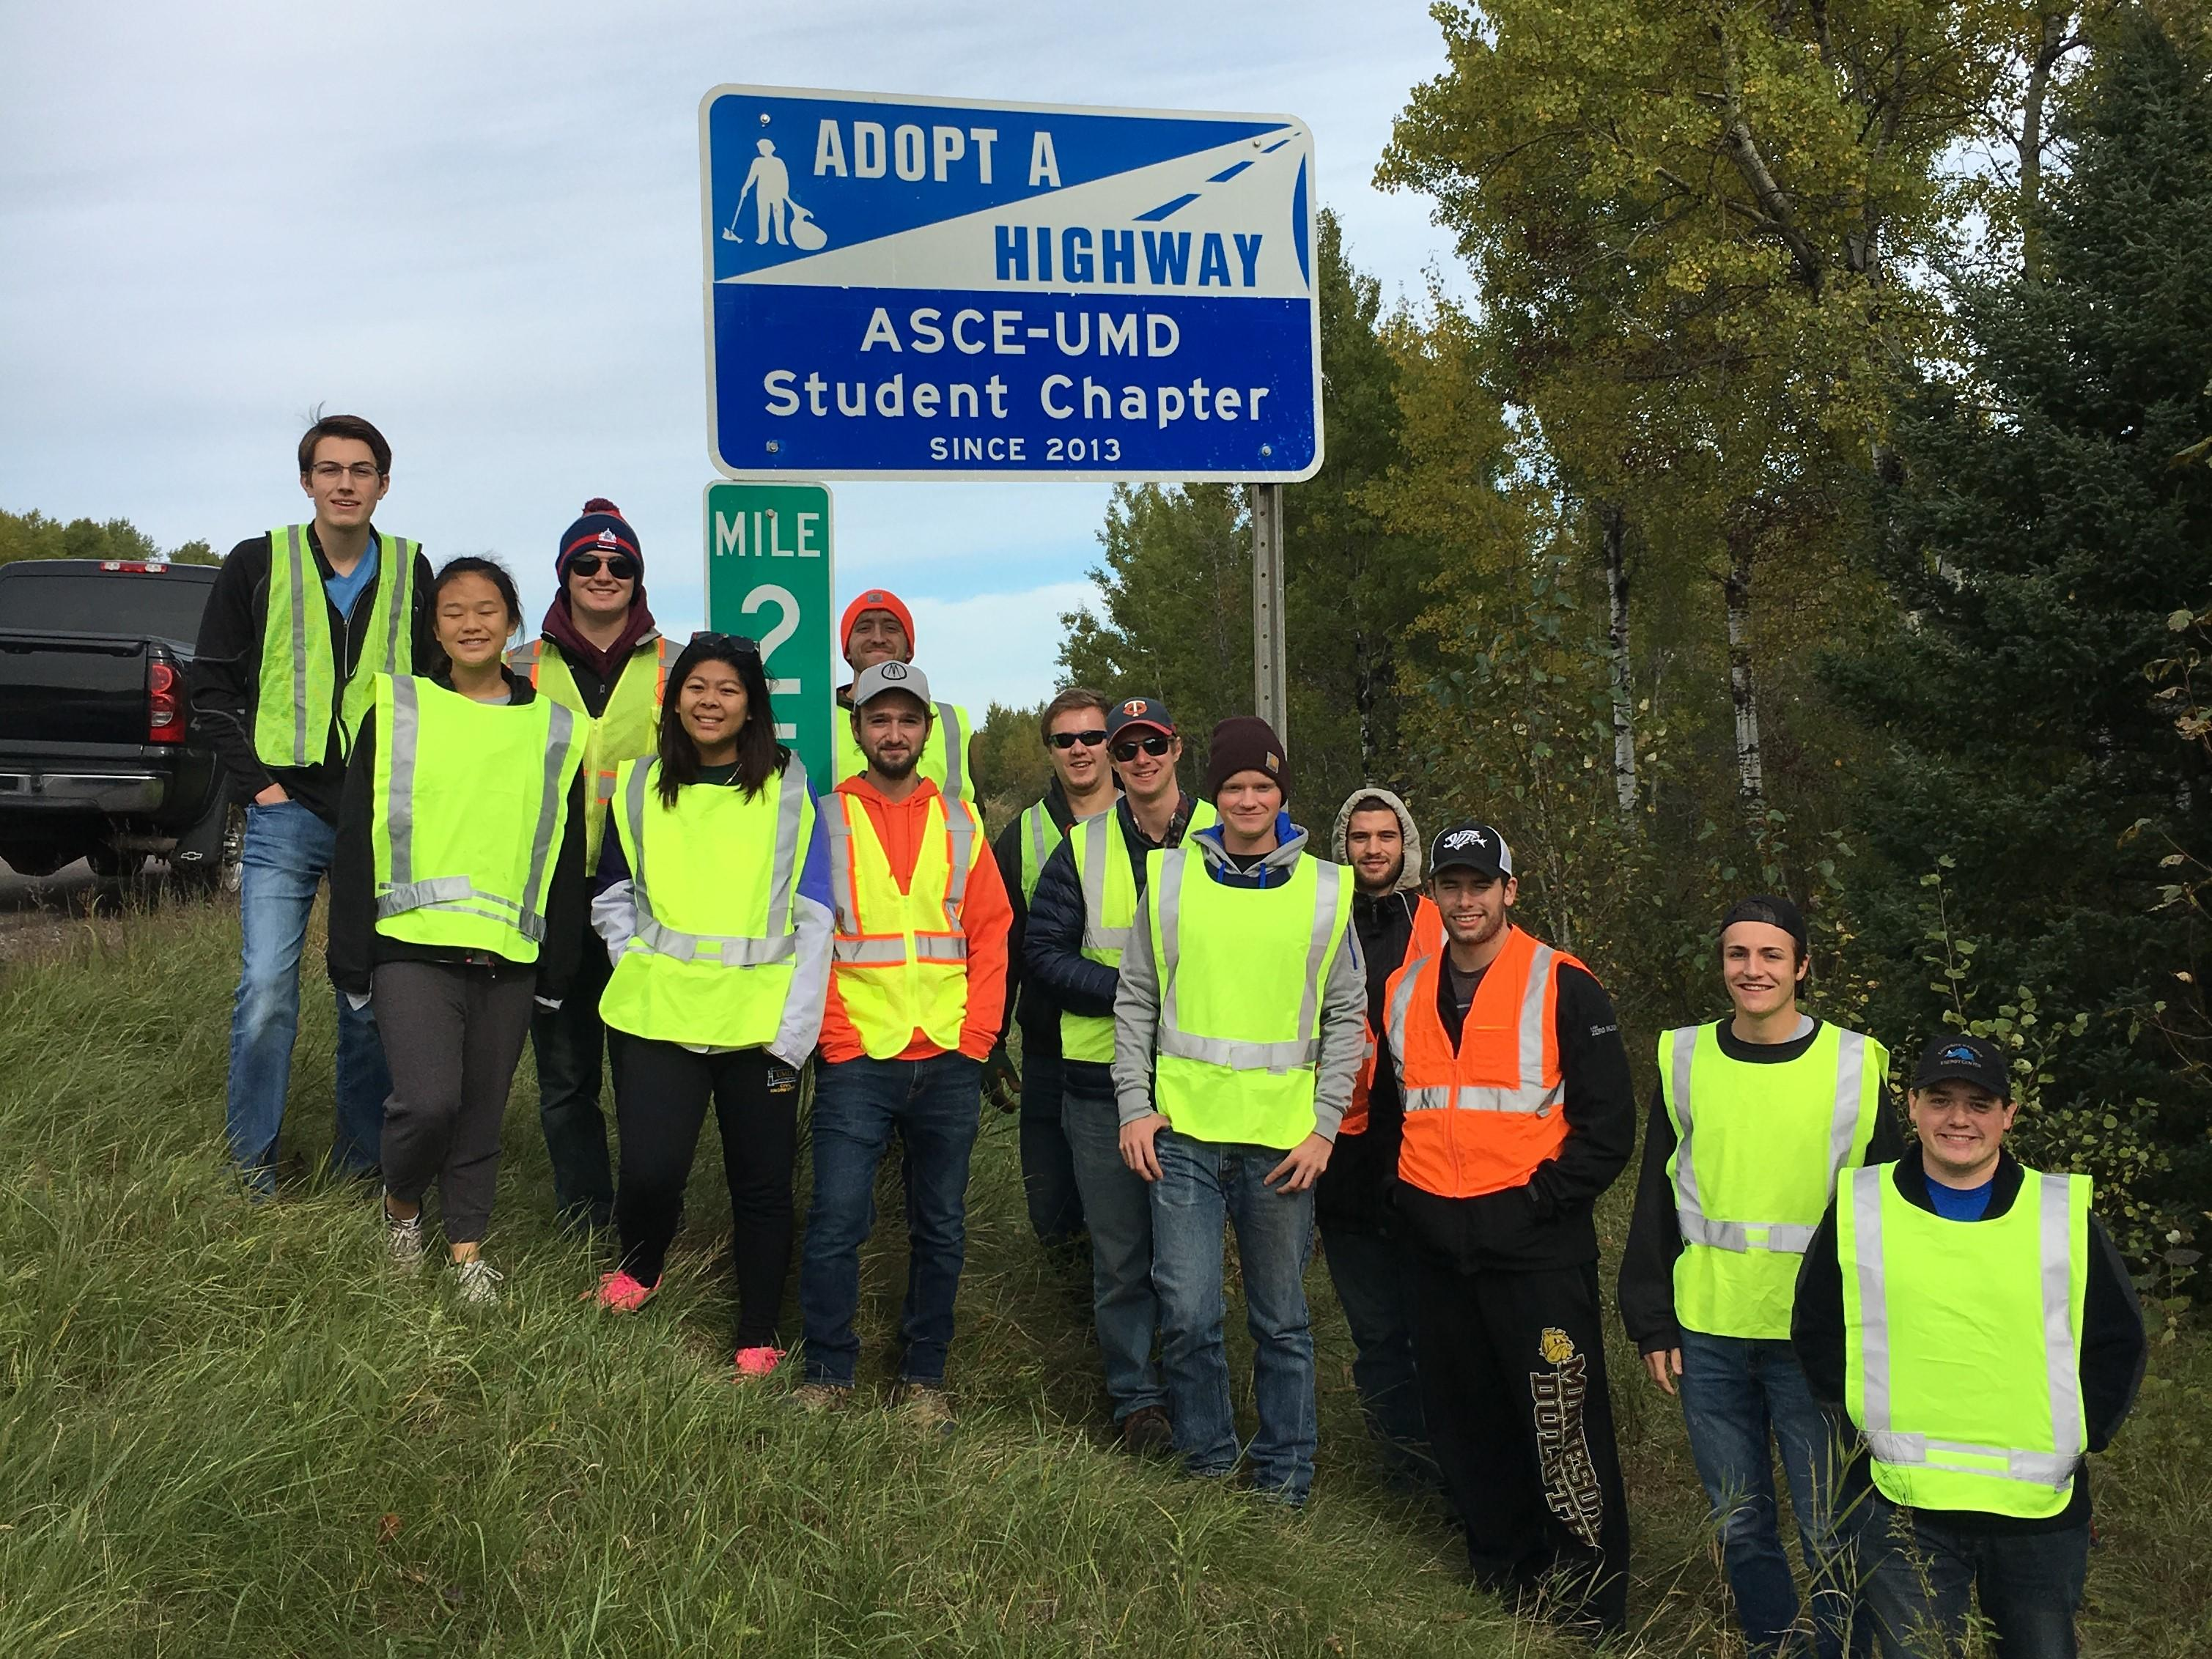 UMD ASCE students with the Adopt-a-highway sign